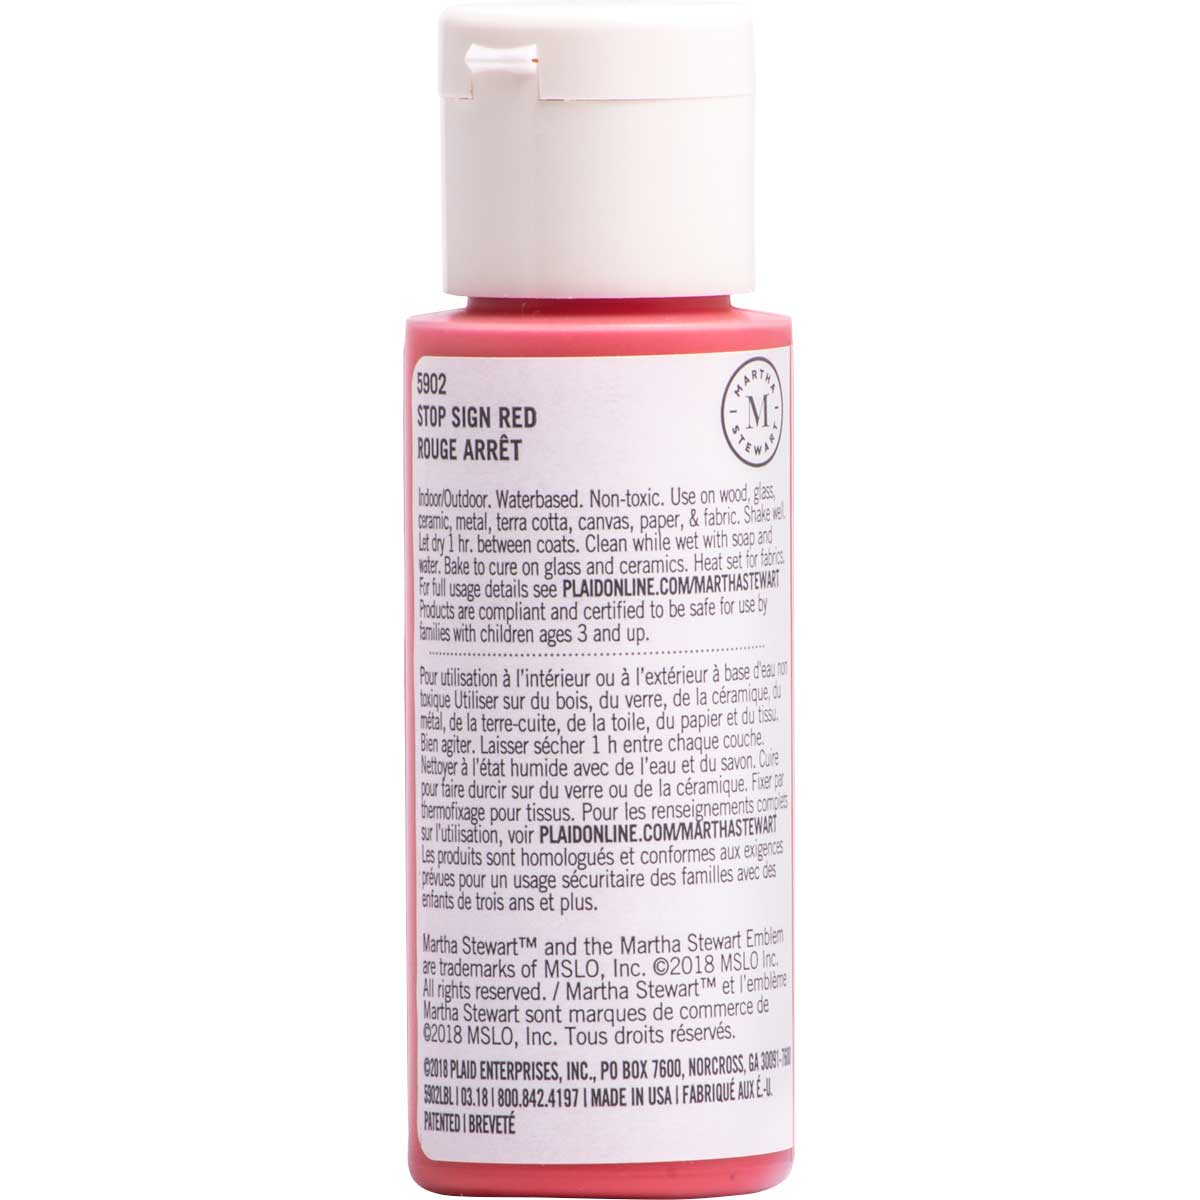 Martha Stewart ® Multi-Surface Satin Acrylic Craft Paint CPSIA - Stop Sign Red, 2 oz. - 5902